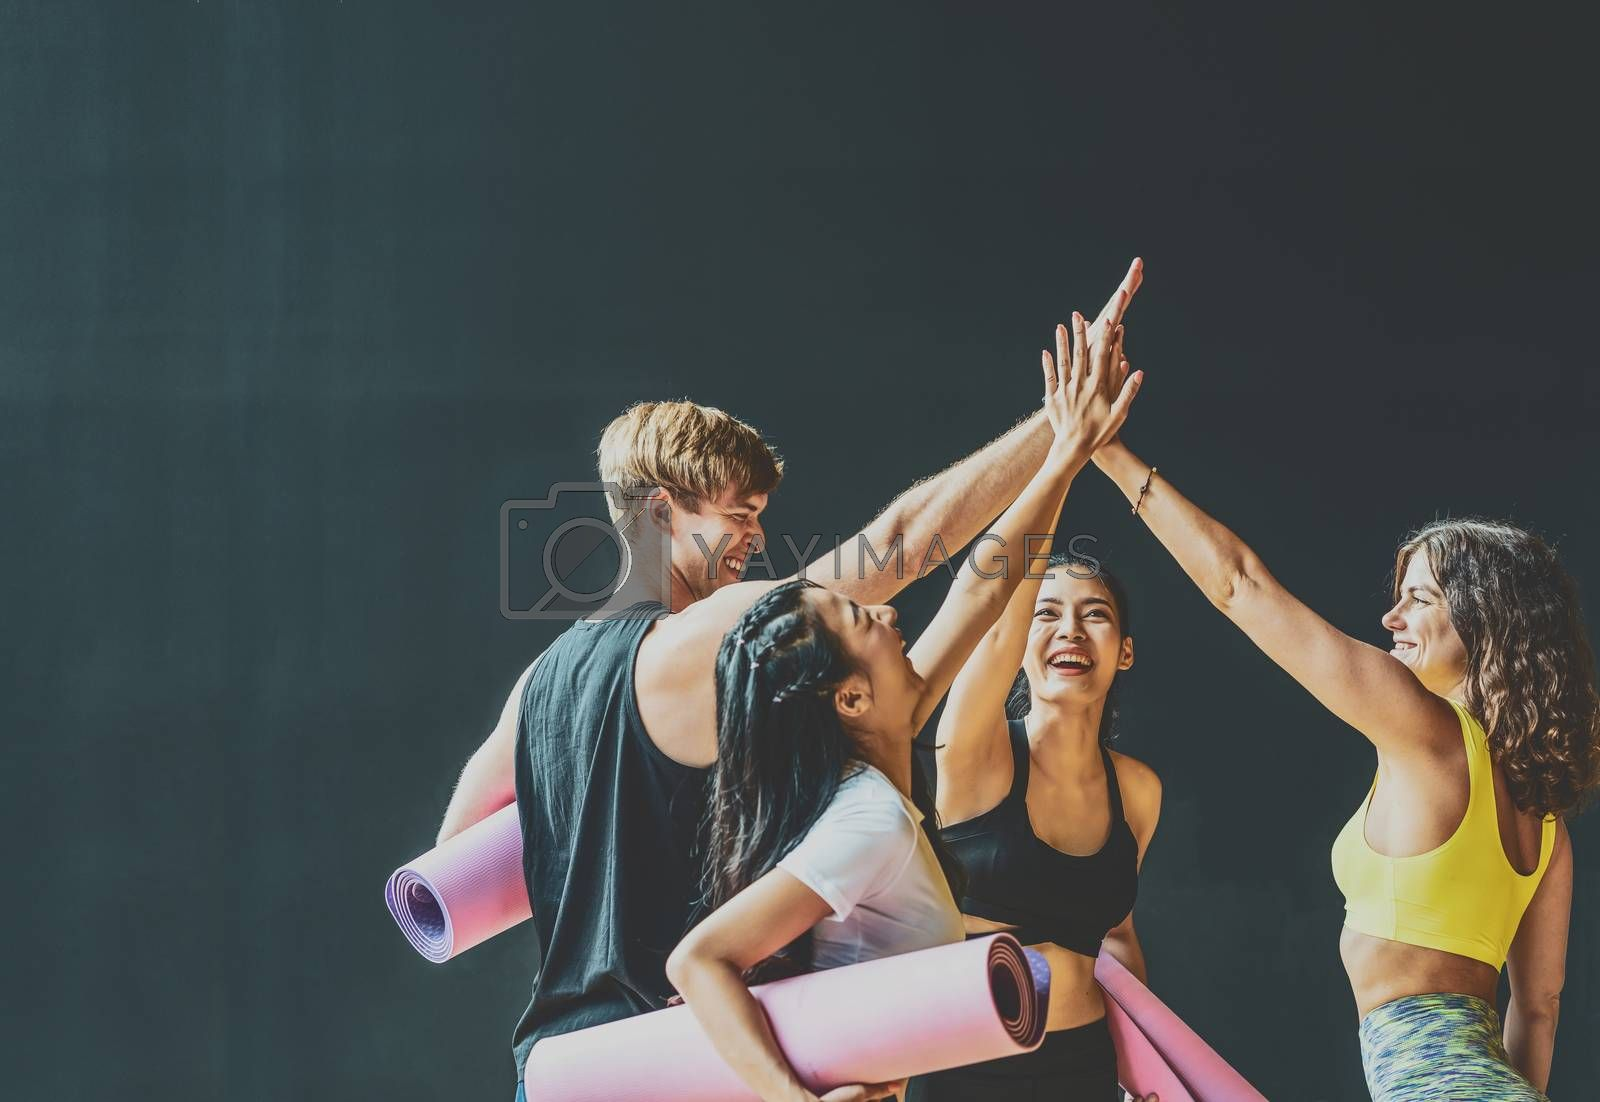 Group of diversity sporty people talking and celebrating by give me five with happiness, wearing sportswear bra and pants fashion, posture position, sport club community, sports and healthcare concept